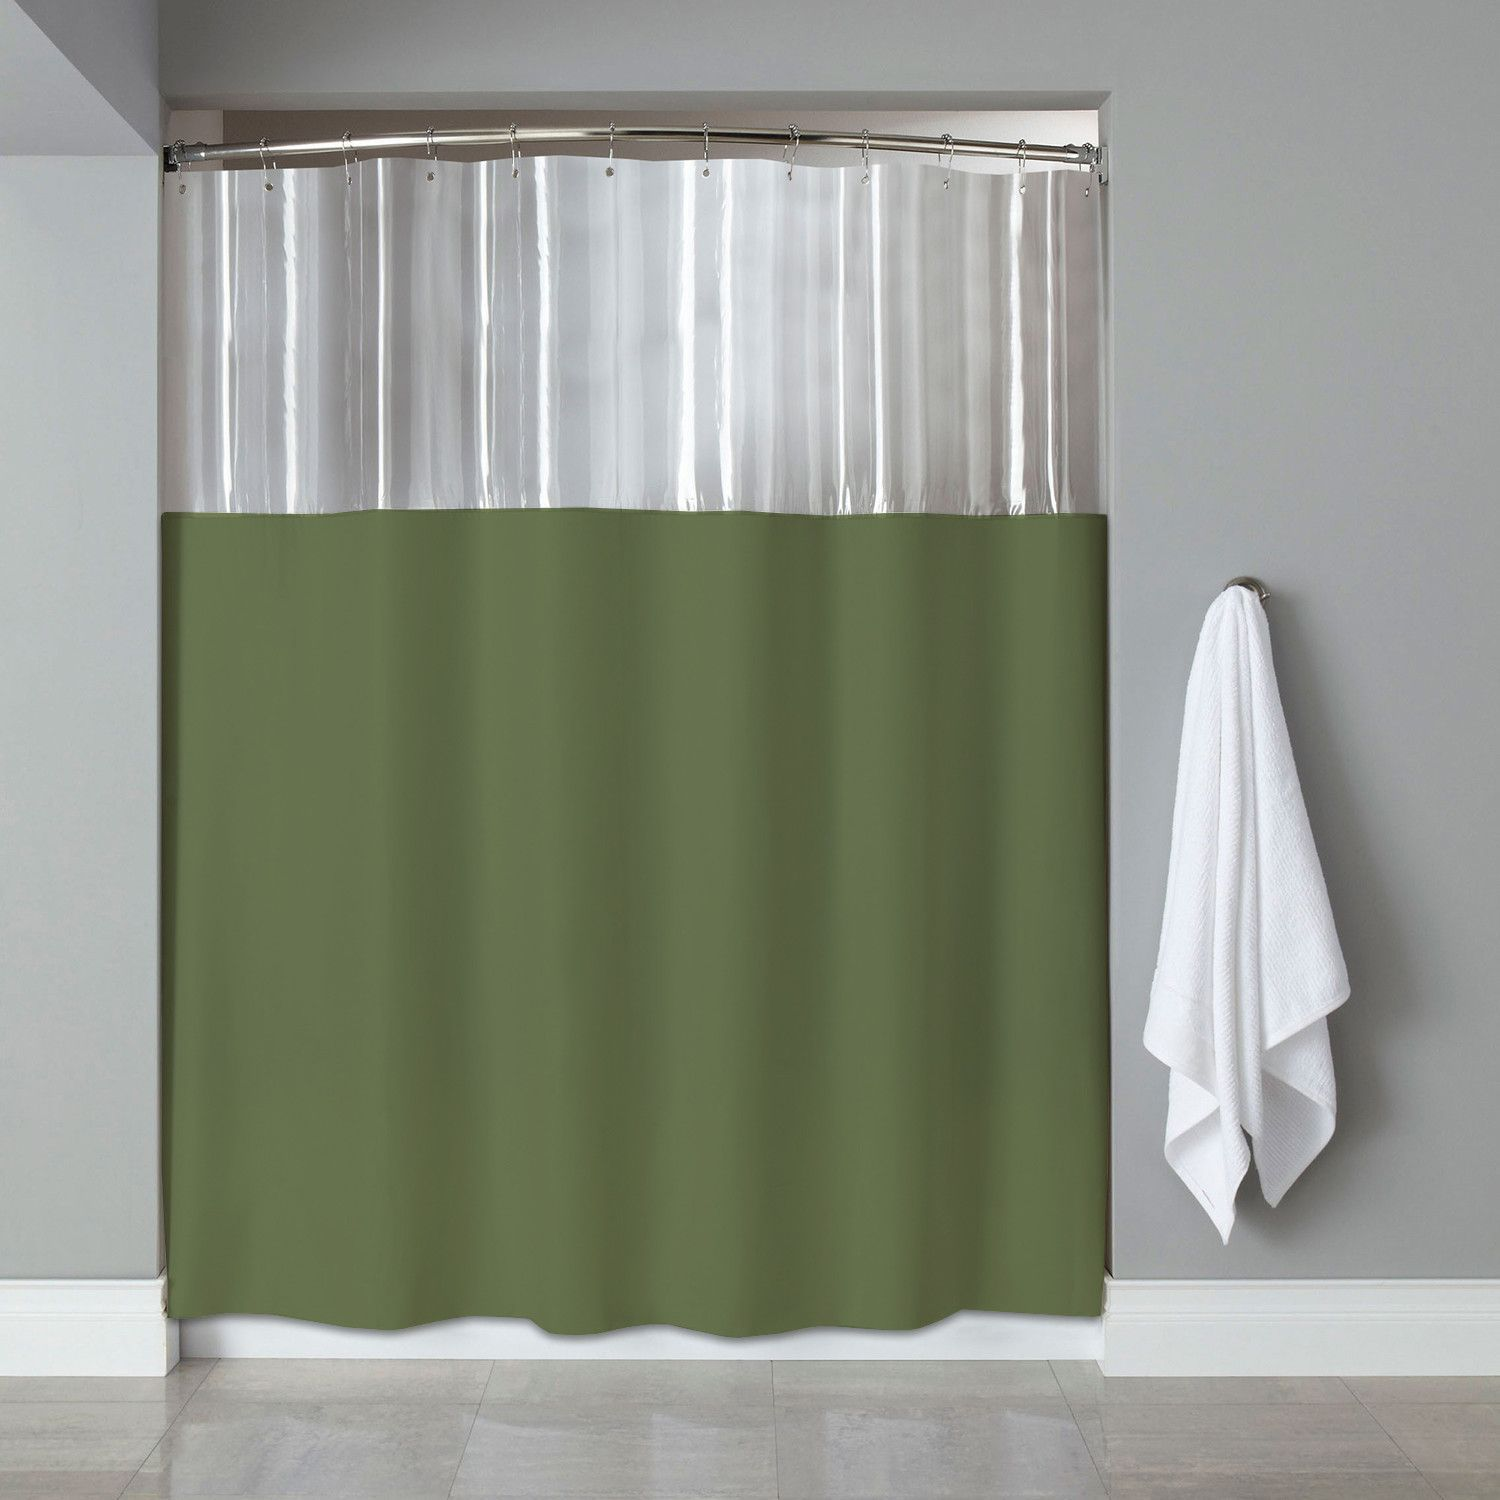 Bed bath and beyond window shades  vinyl see through bath shower curtain  products  pinterest  bath